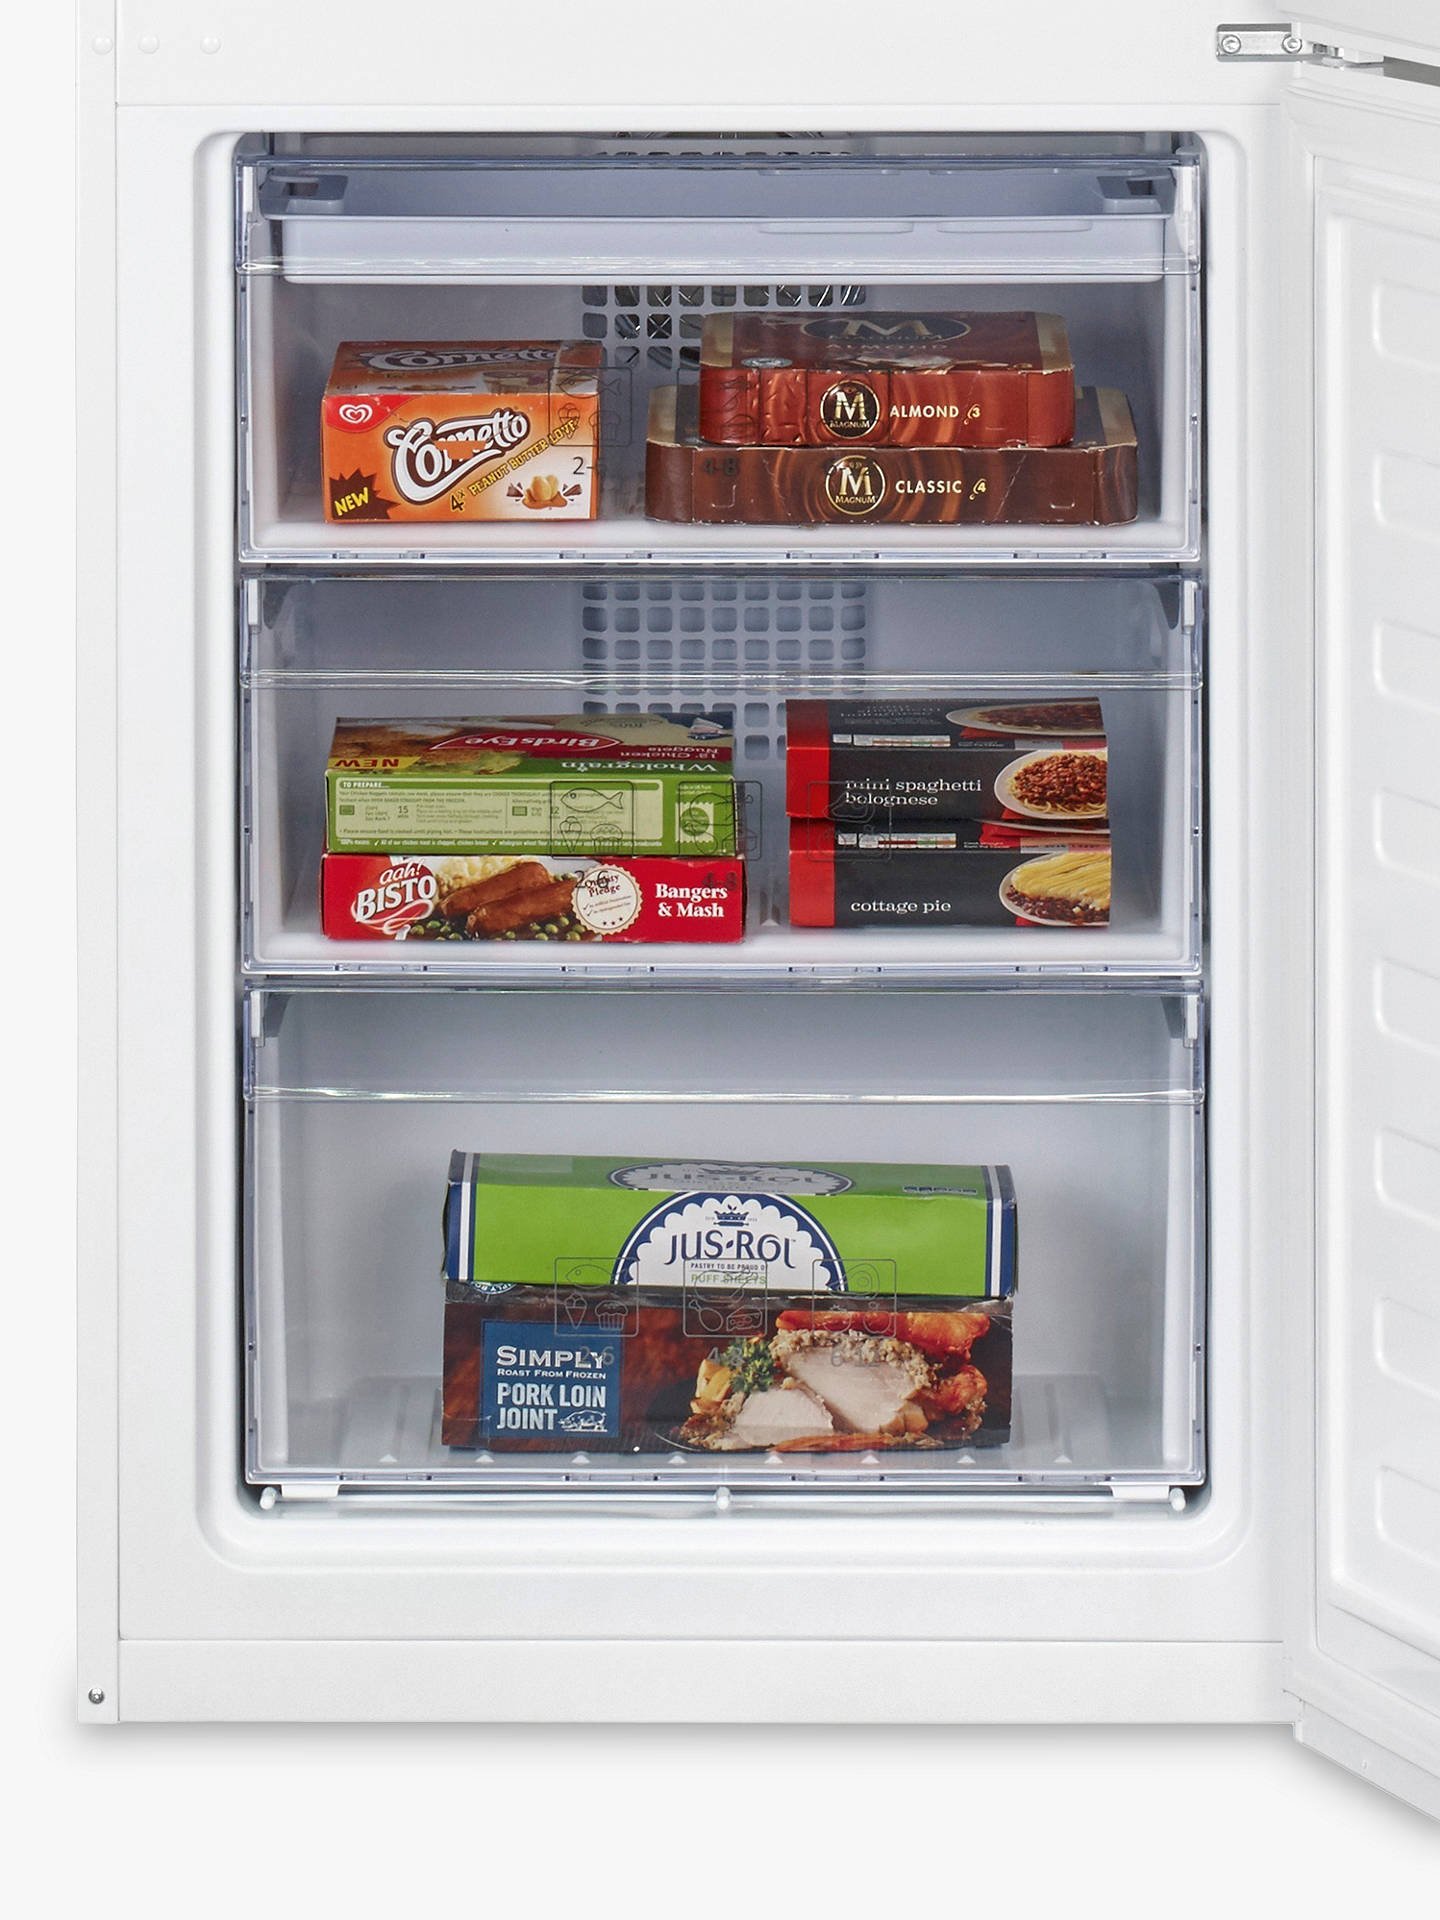 Buy Beko CFP1675W Fridge Freezer, A+ Energy Rating, 60cm Wide, White Online at johnlewis.com